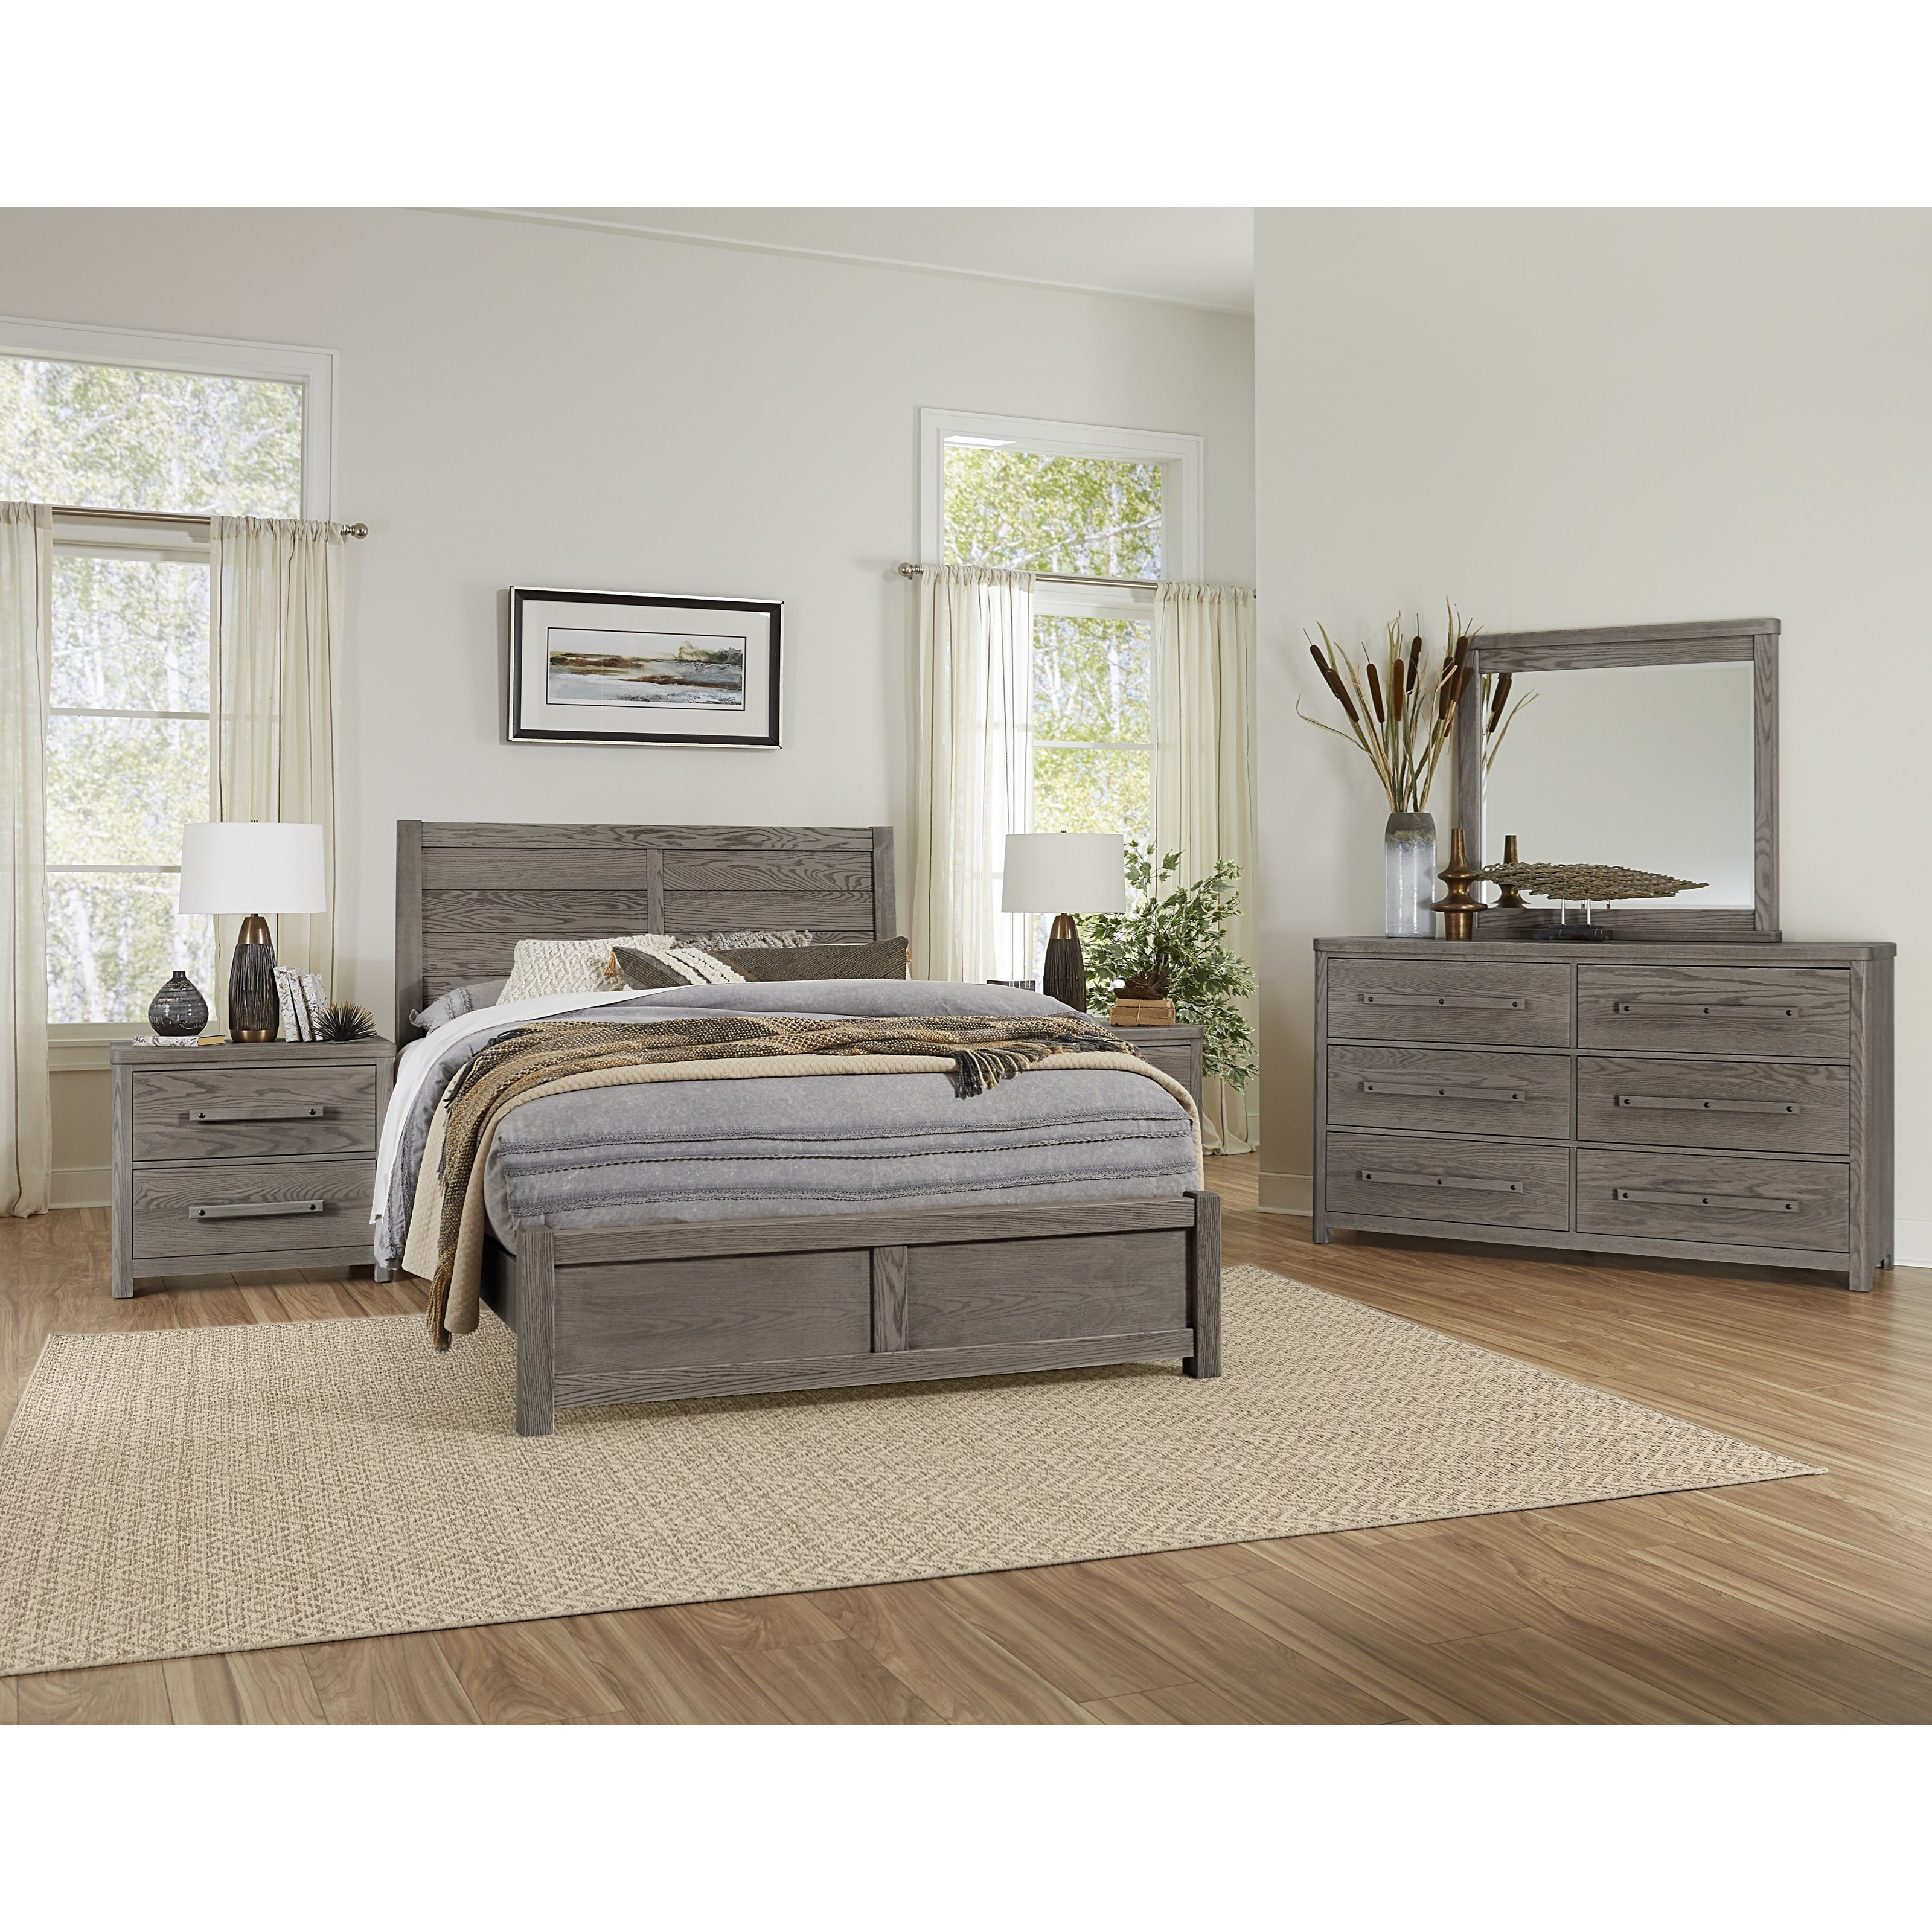 Latitudes Queen Bedroom Group by Artisan & Post at Esprit Decor Home Furnishings